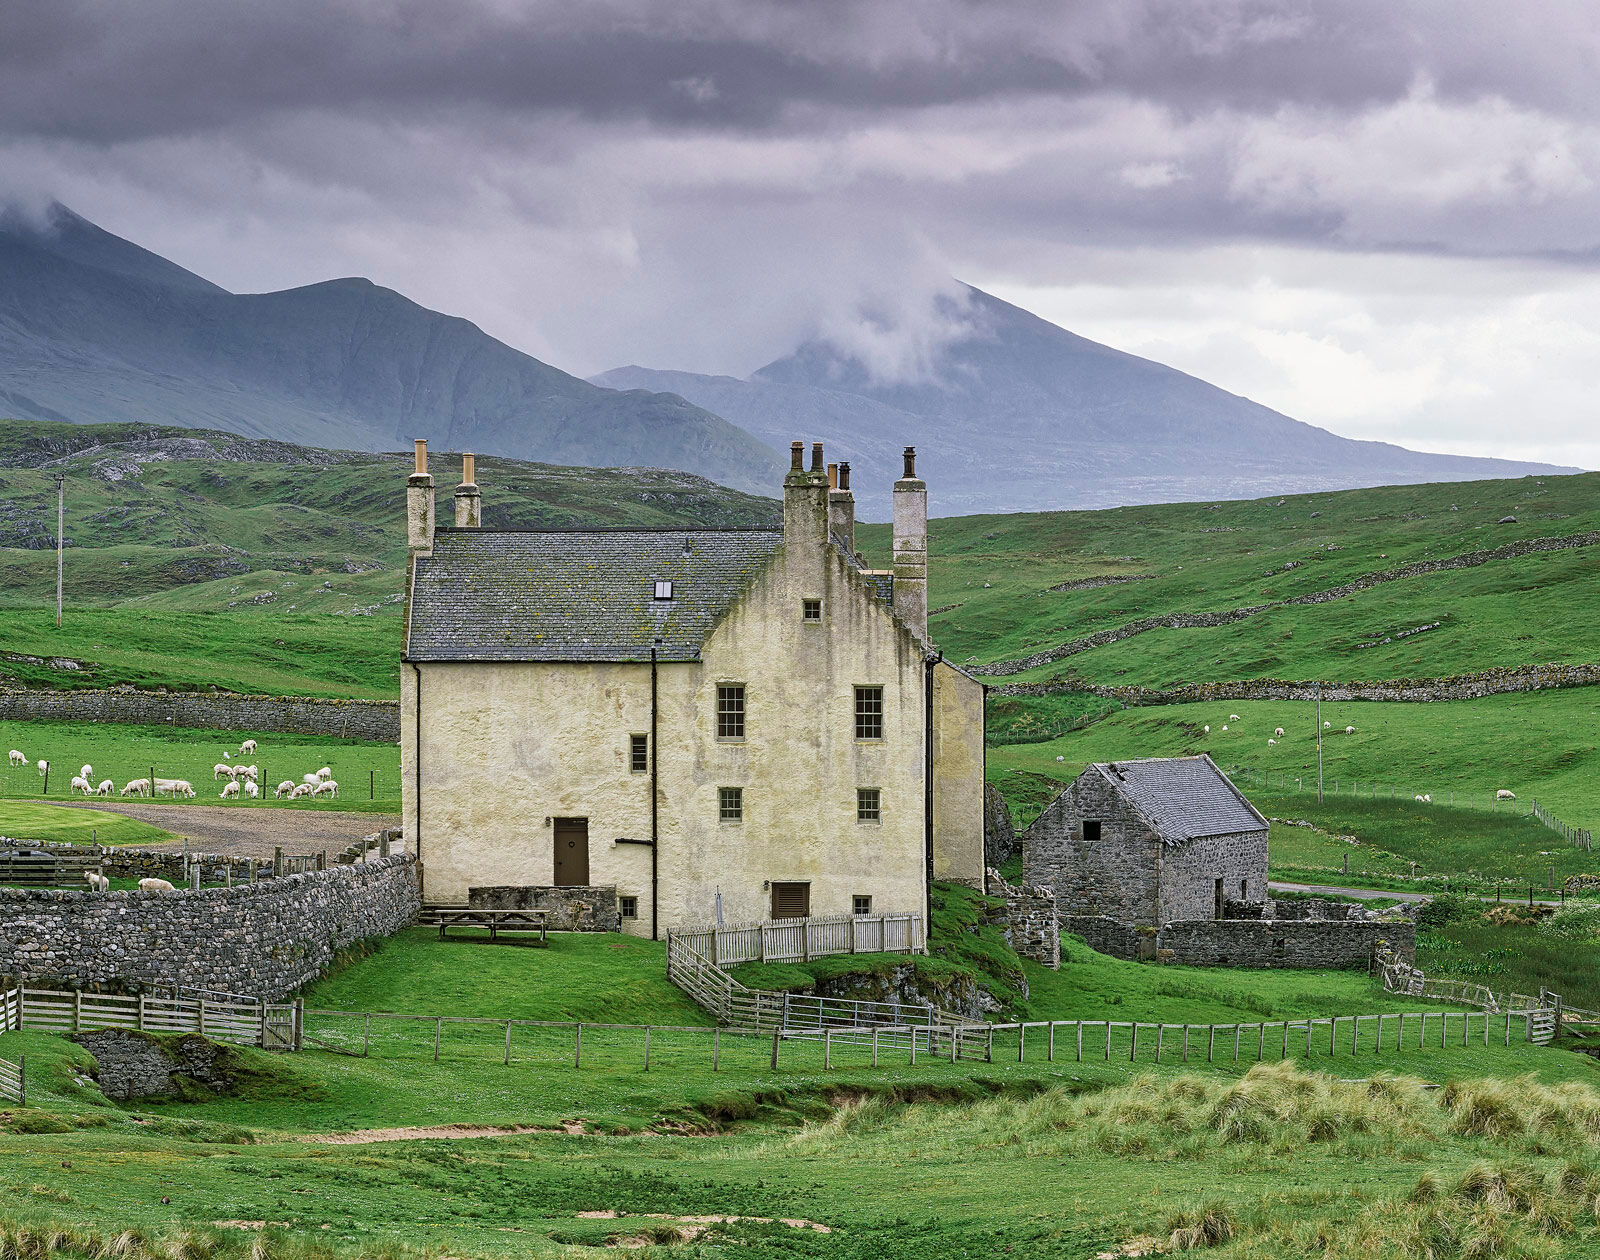 For a reason that completely escapes me I find this particular picture of a large and not hugely attractive old house absurdly...